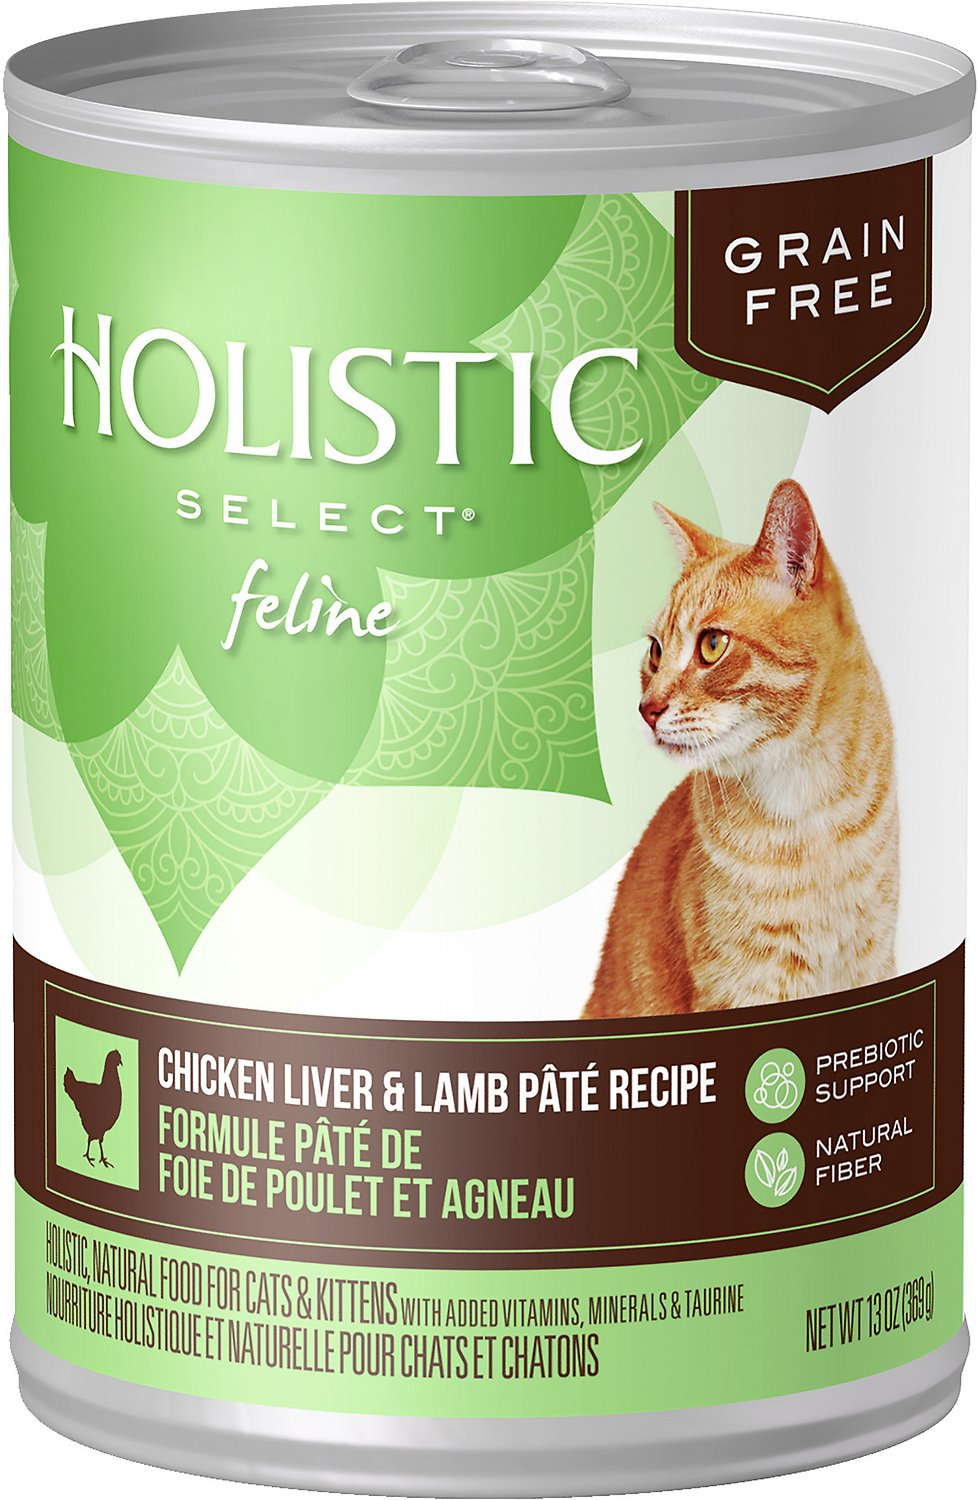 Holistic Select Chicken Liver & Lamb Pate Recipe Grain-Free Canned Cat & Kitten Food